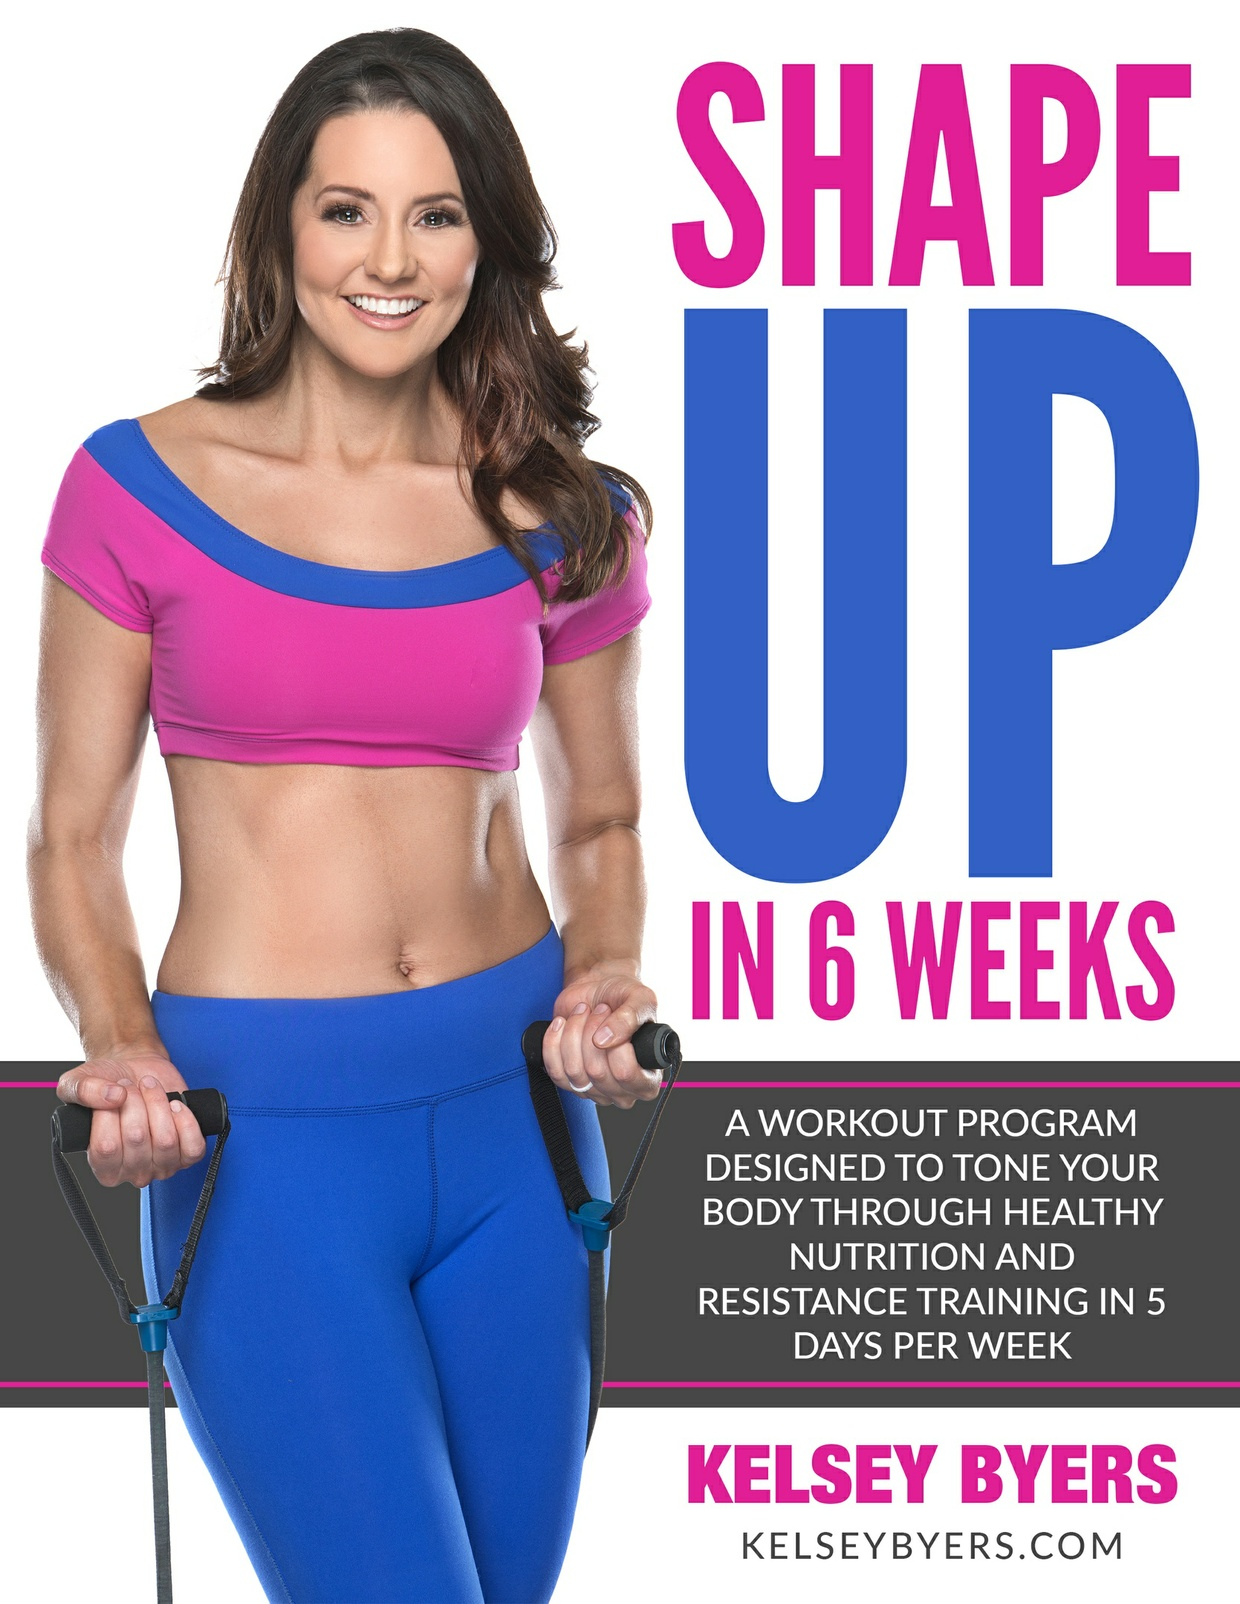 Shape Up in 6 Weeks - Plan only, not challenge